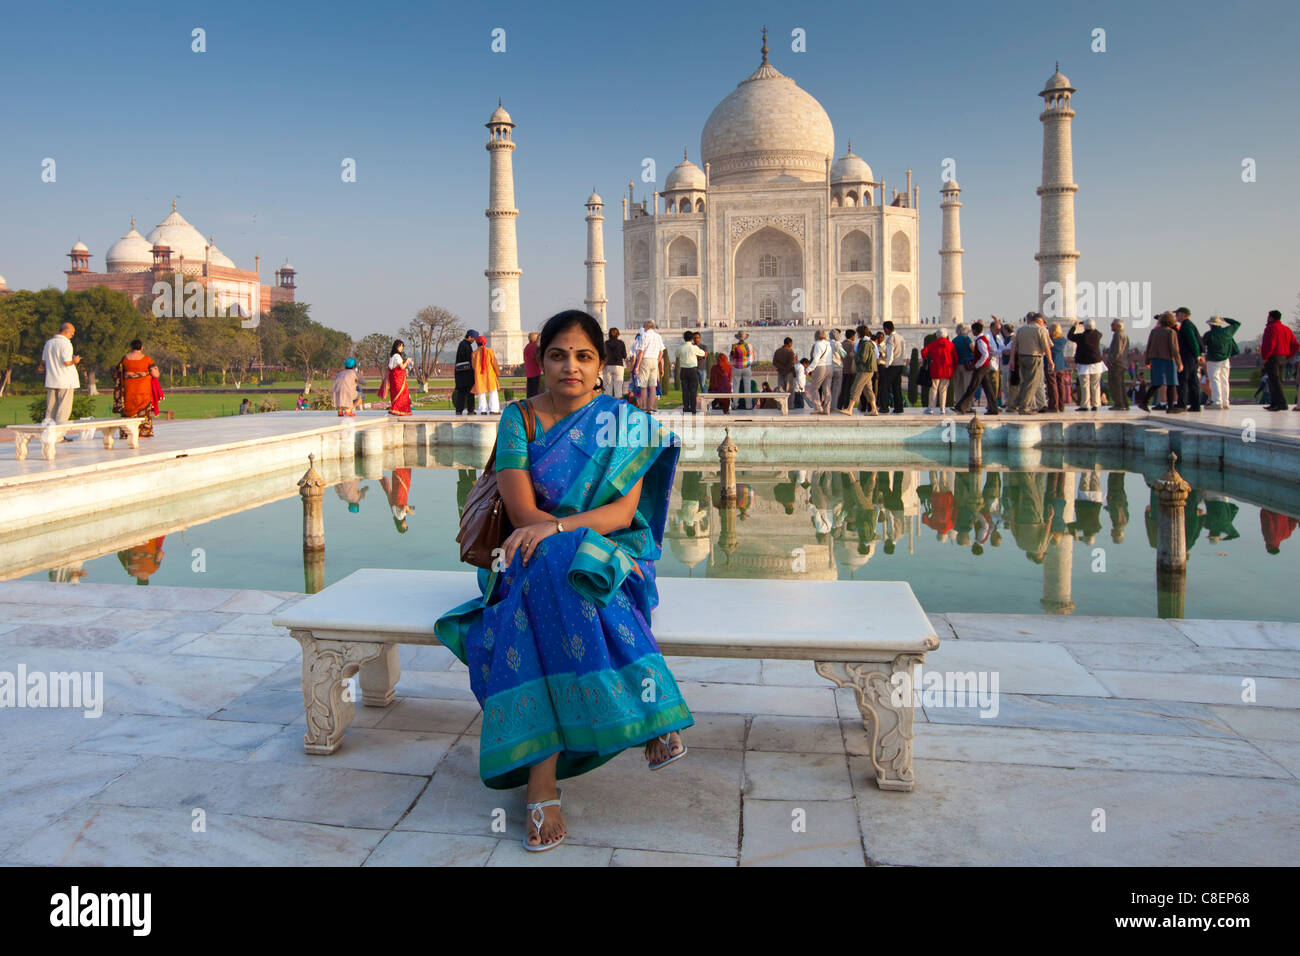 Indian tourist sits on Diana bench at The Taj Mahal mausoleum southern view with reflecting pool, Uttar Pradesh, - Stock Image